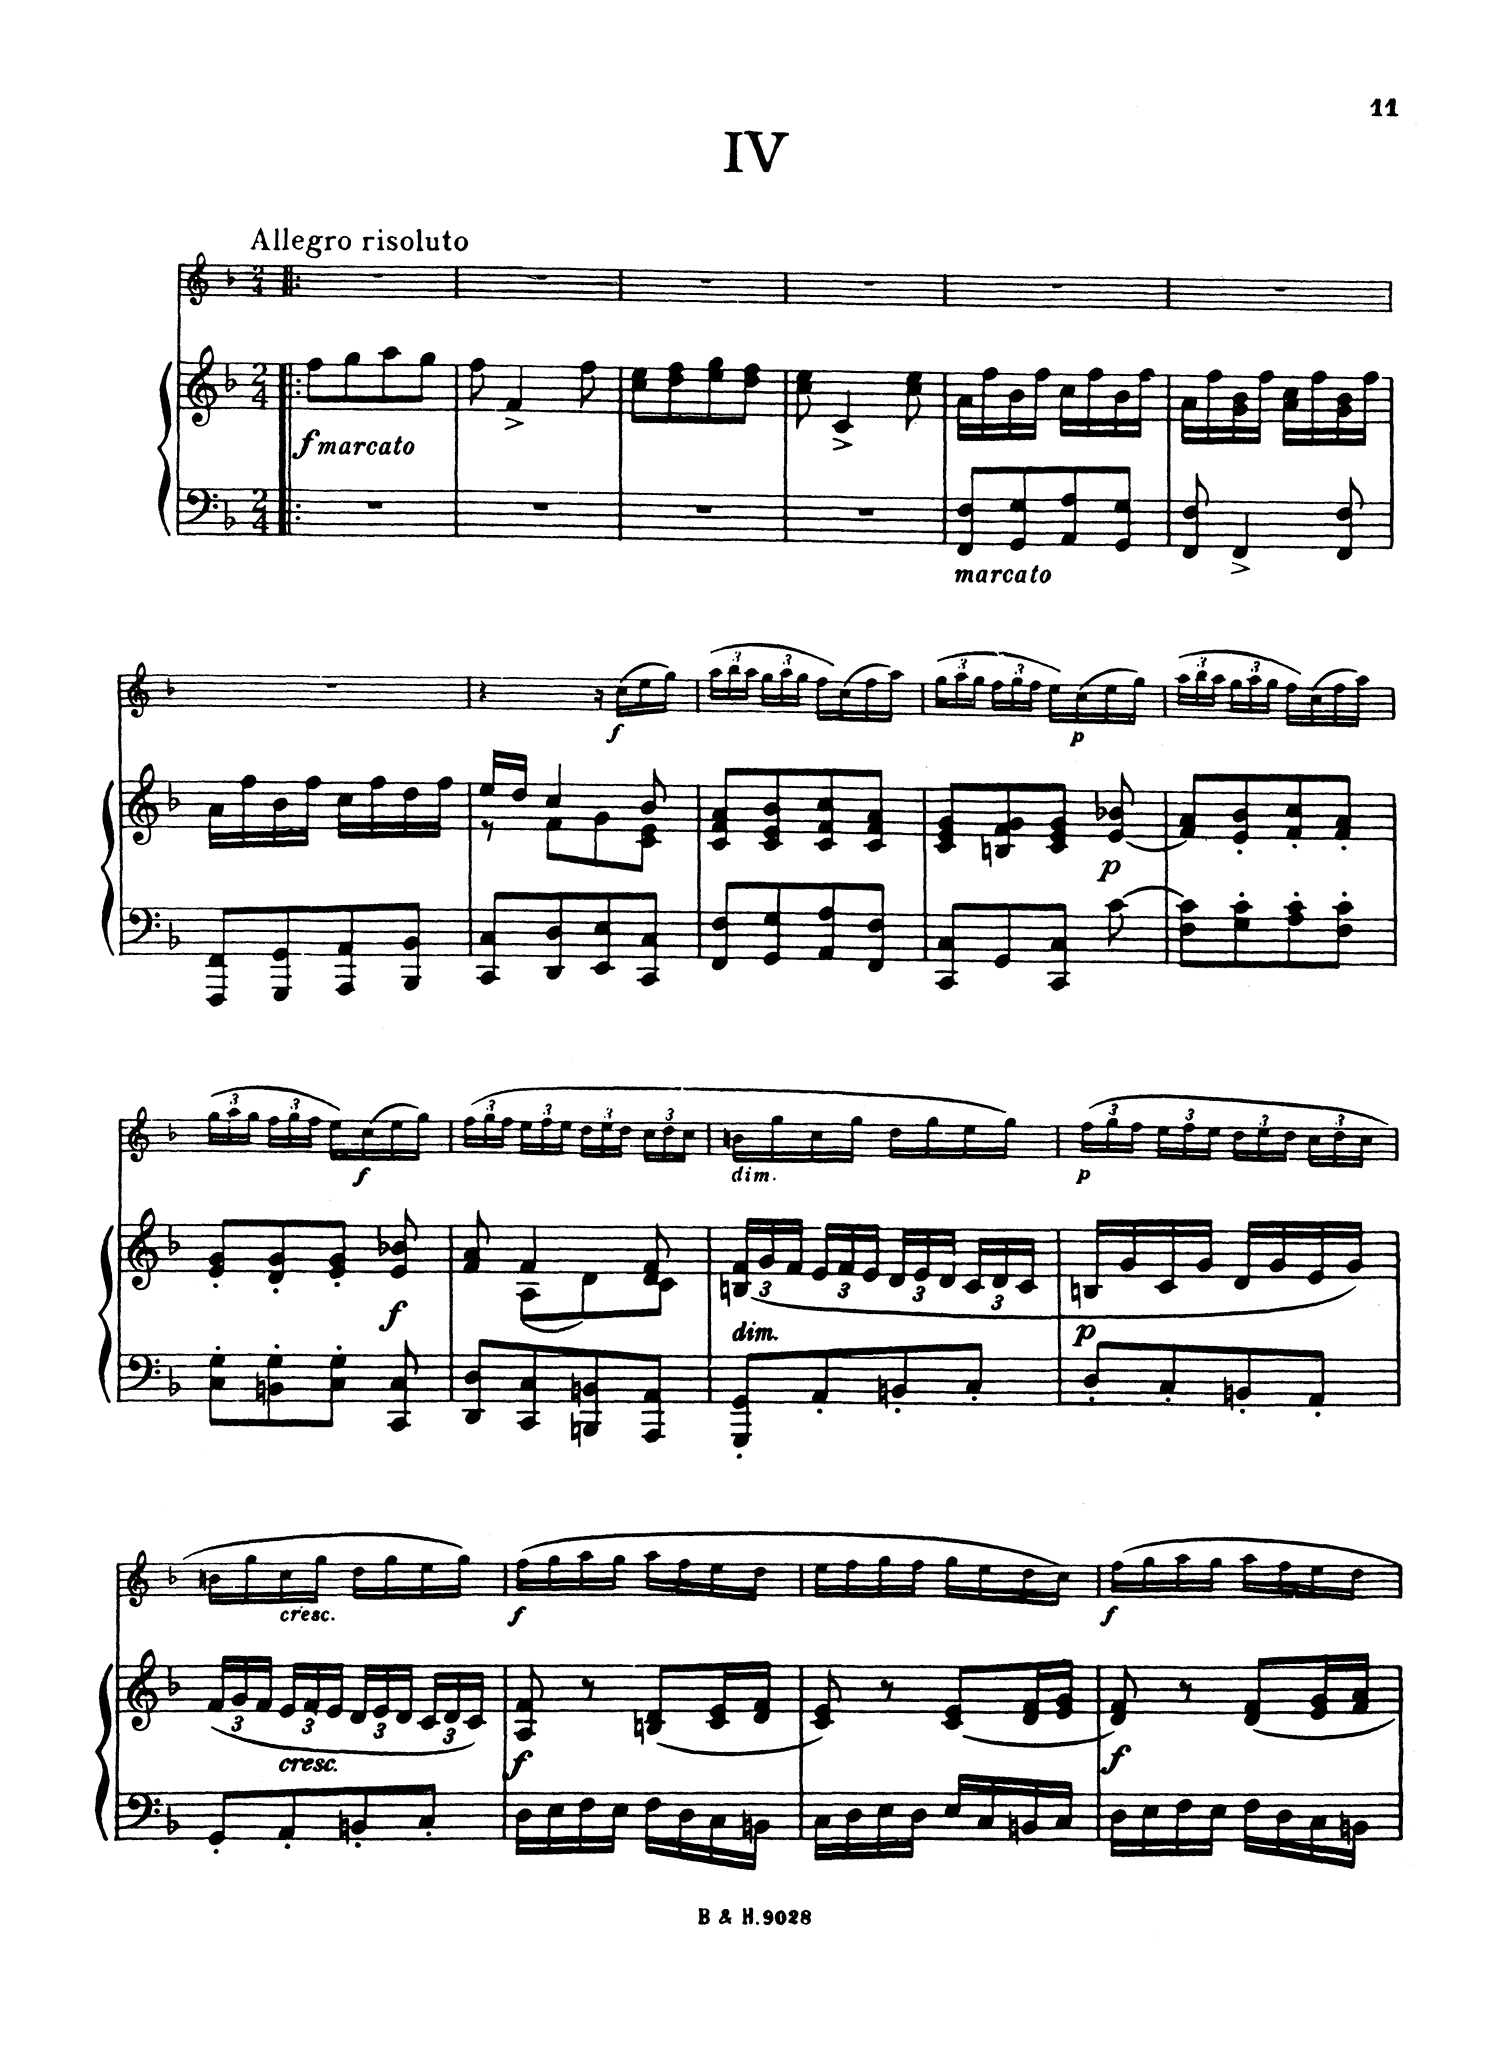 Tartini Jacob Clarinet Concertino - Movement 4